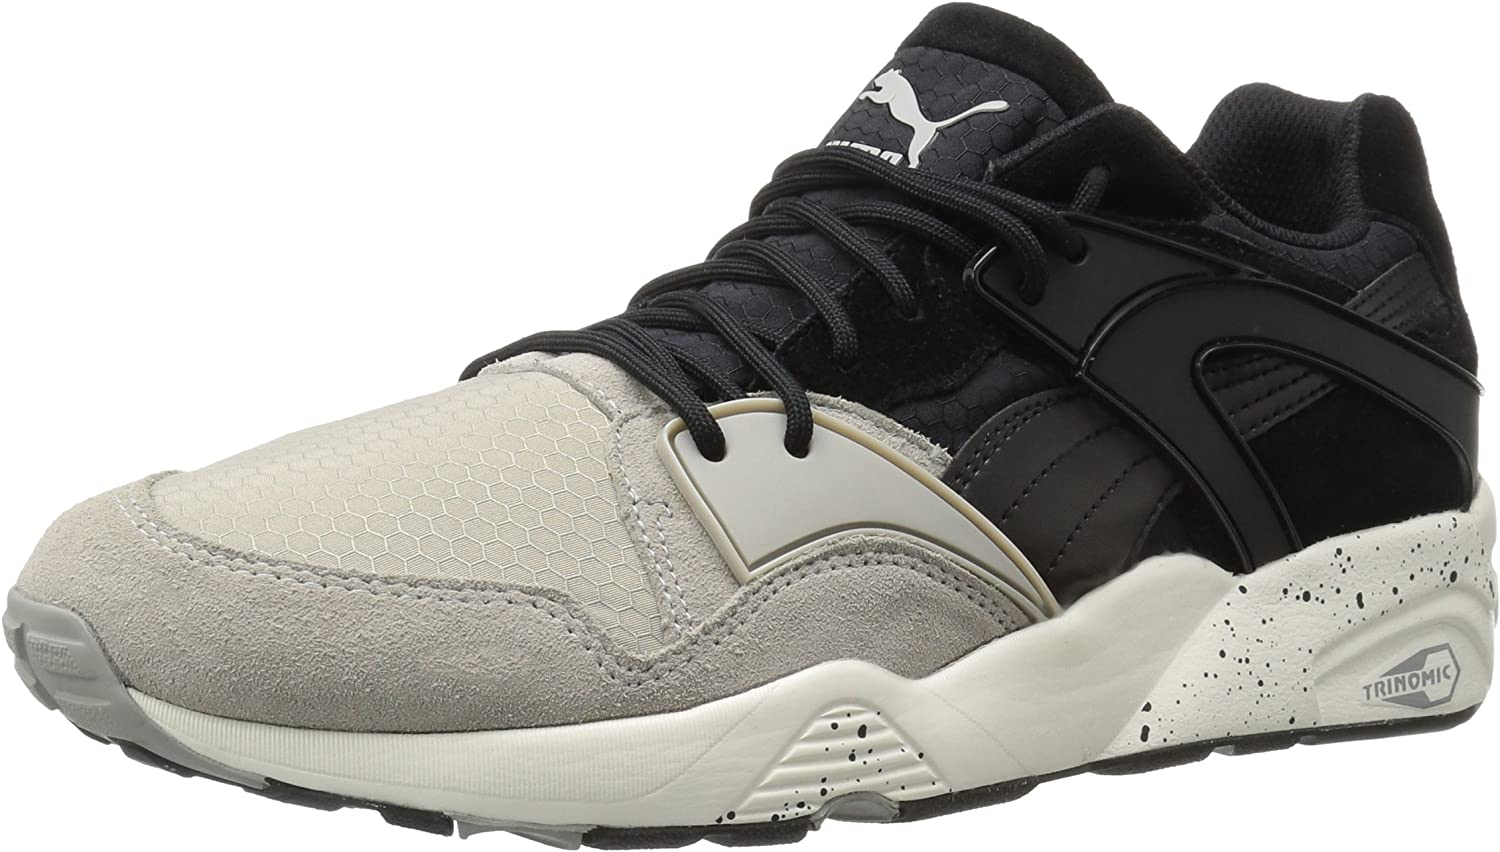 PUMA Men's Blaze Winter Tech Fashion Sneaker